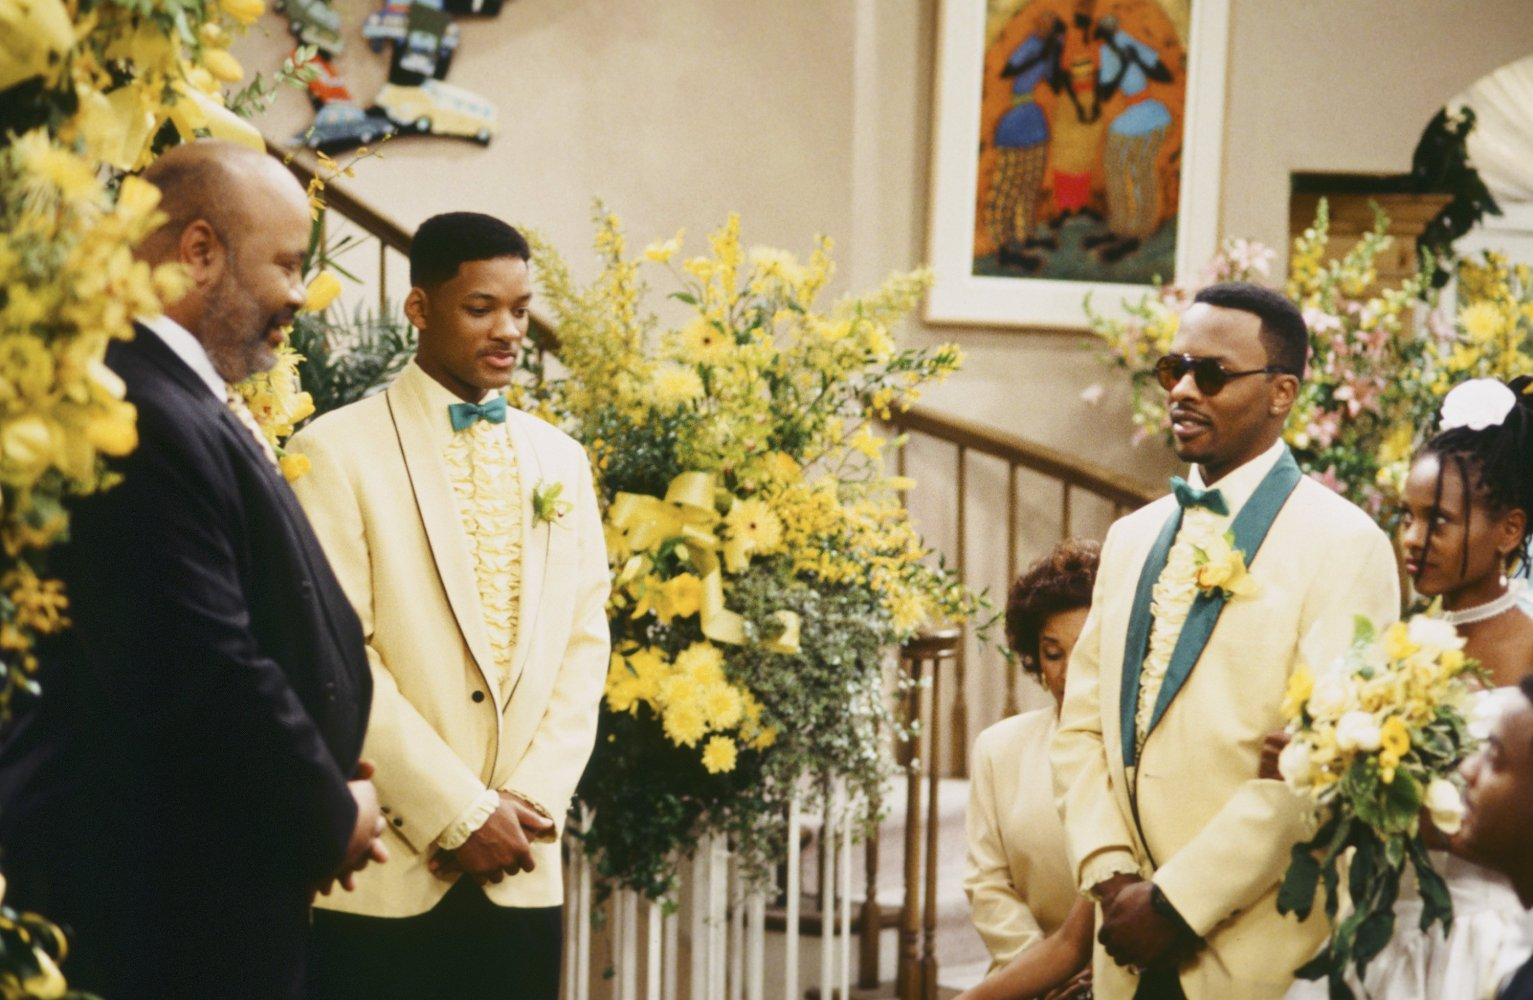 Will Smith James Avery Dj Jazzy Jeff Karen Malina White Sitcoms Online Photo Galleries Youngblood, darrin dewitt henson, terry dexter. will smith james avery dj jazzy jeff